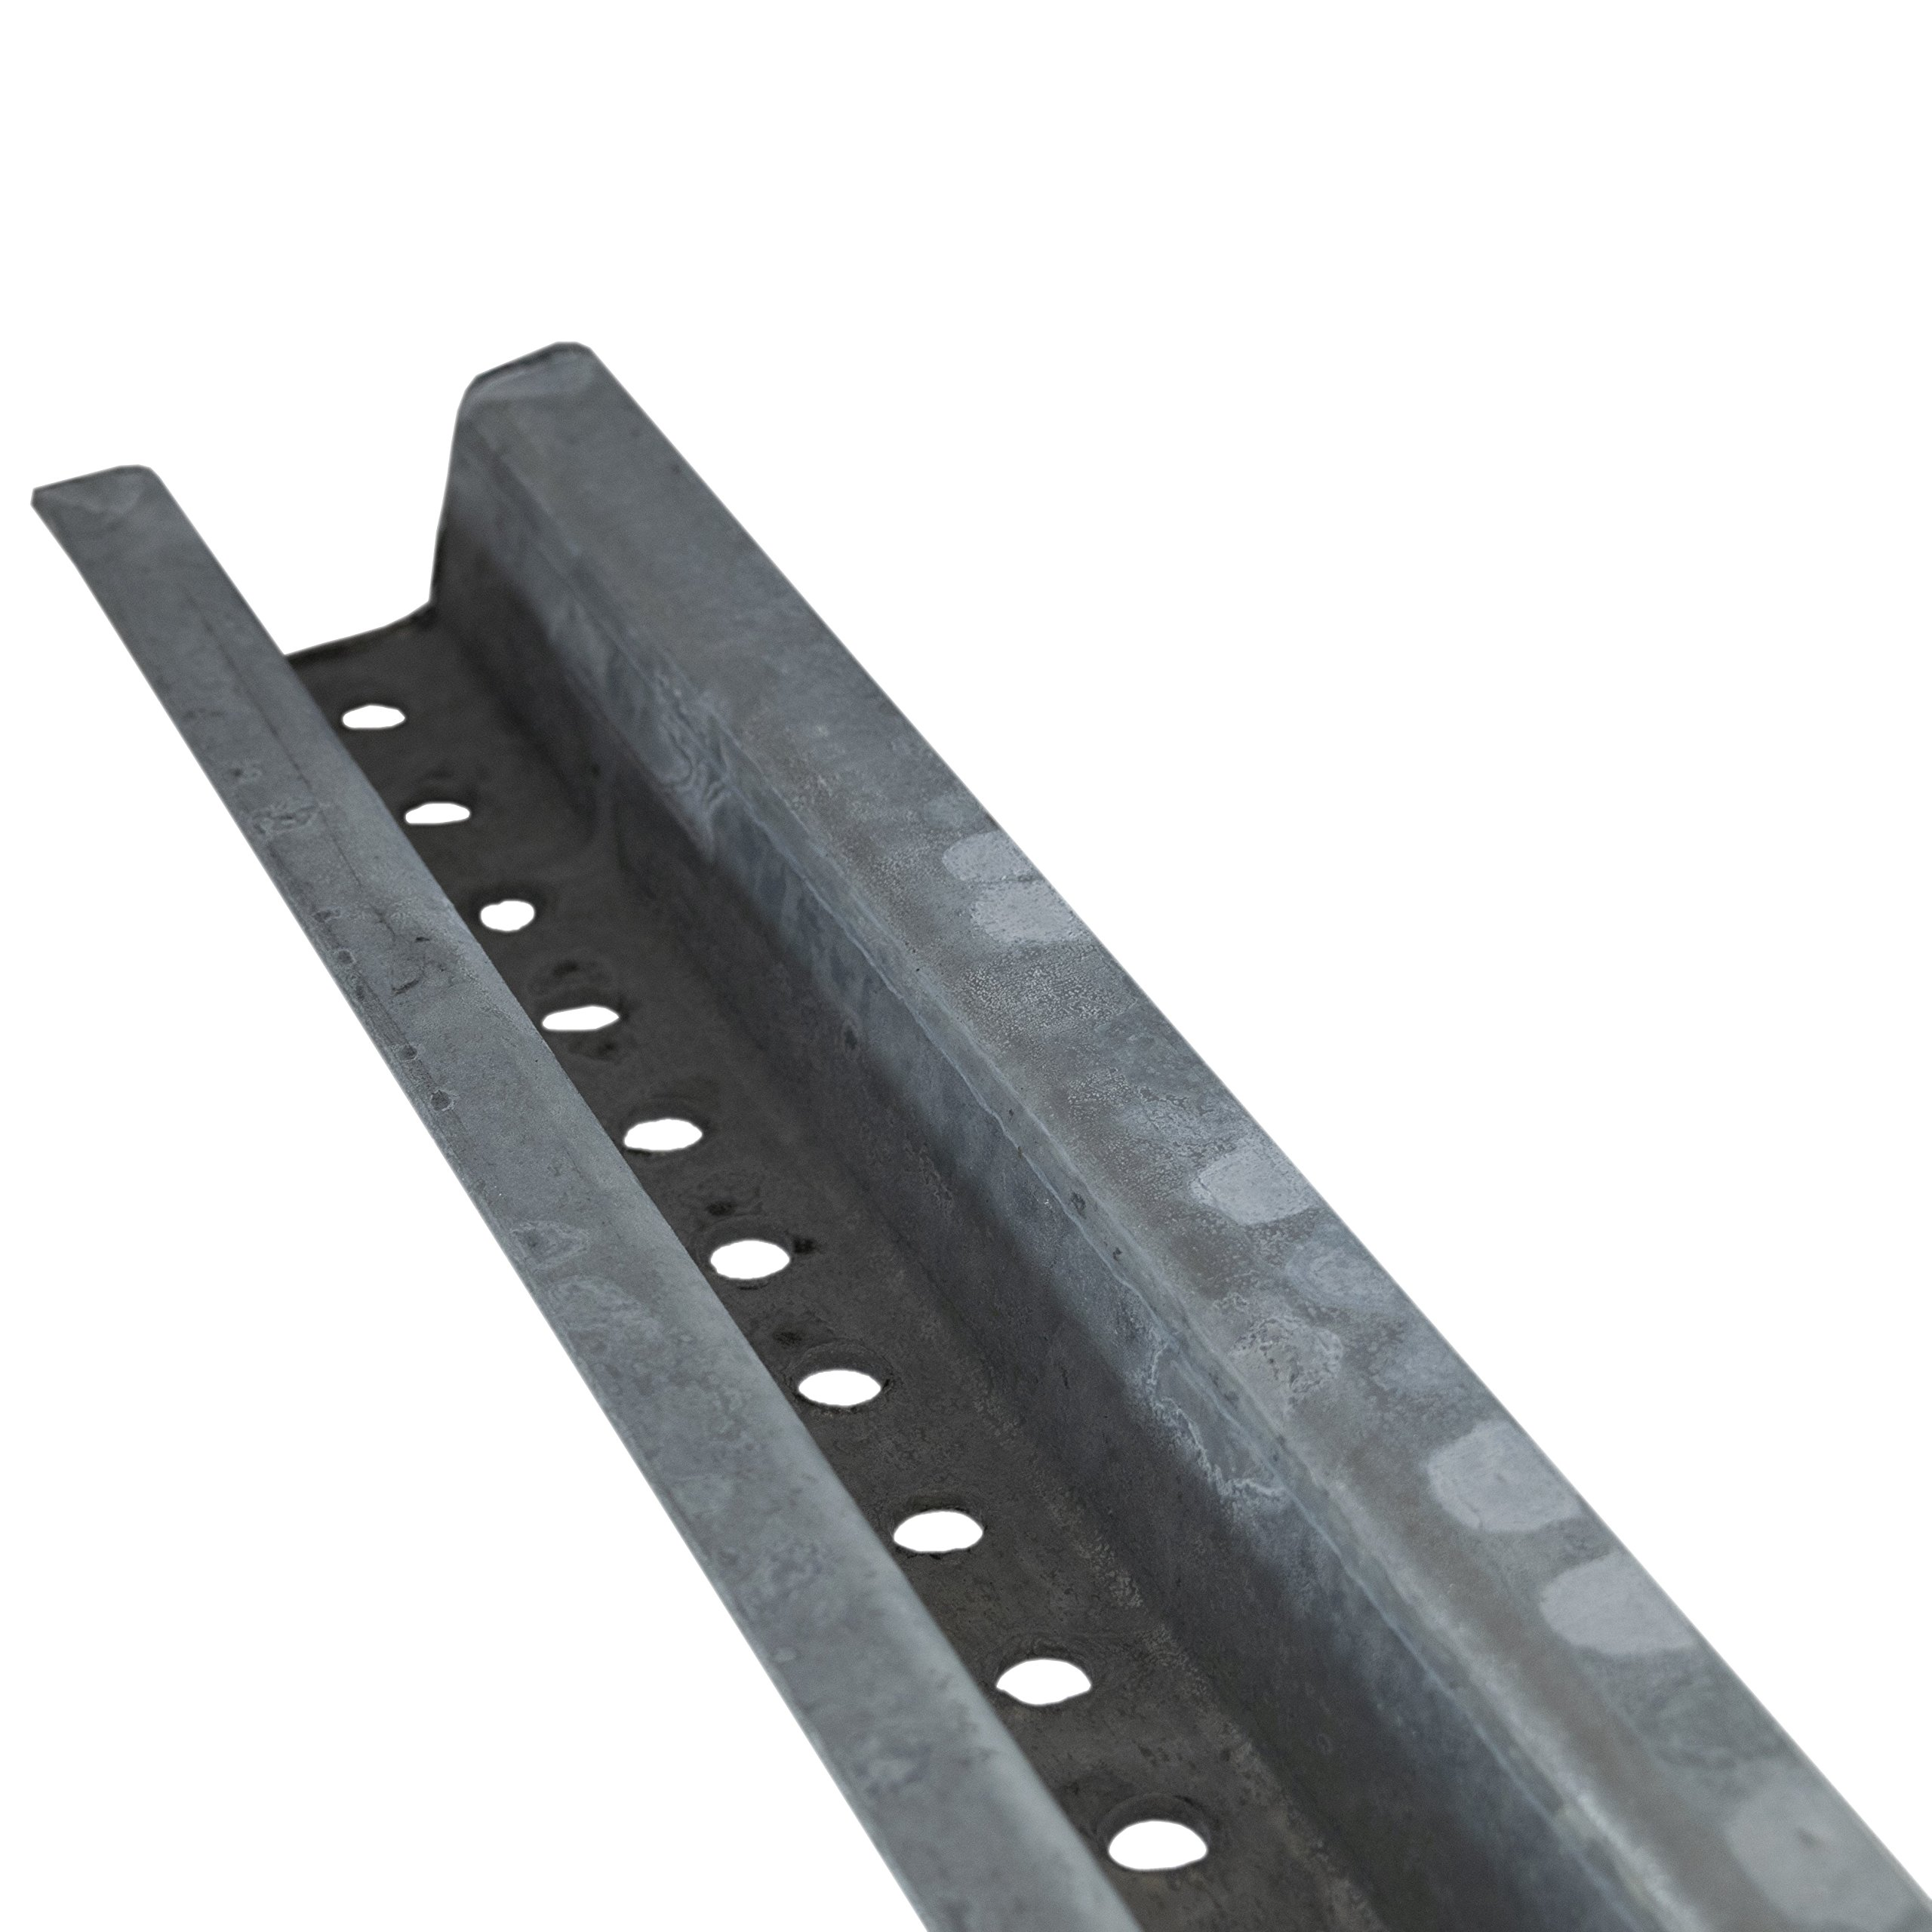 Nmc P4Gv UChannel Sign Post, 4' Galvanized Steel, Punched With 3/8 Holes, 1 On Center Full